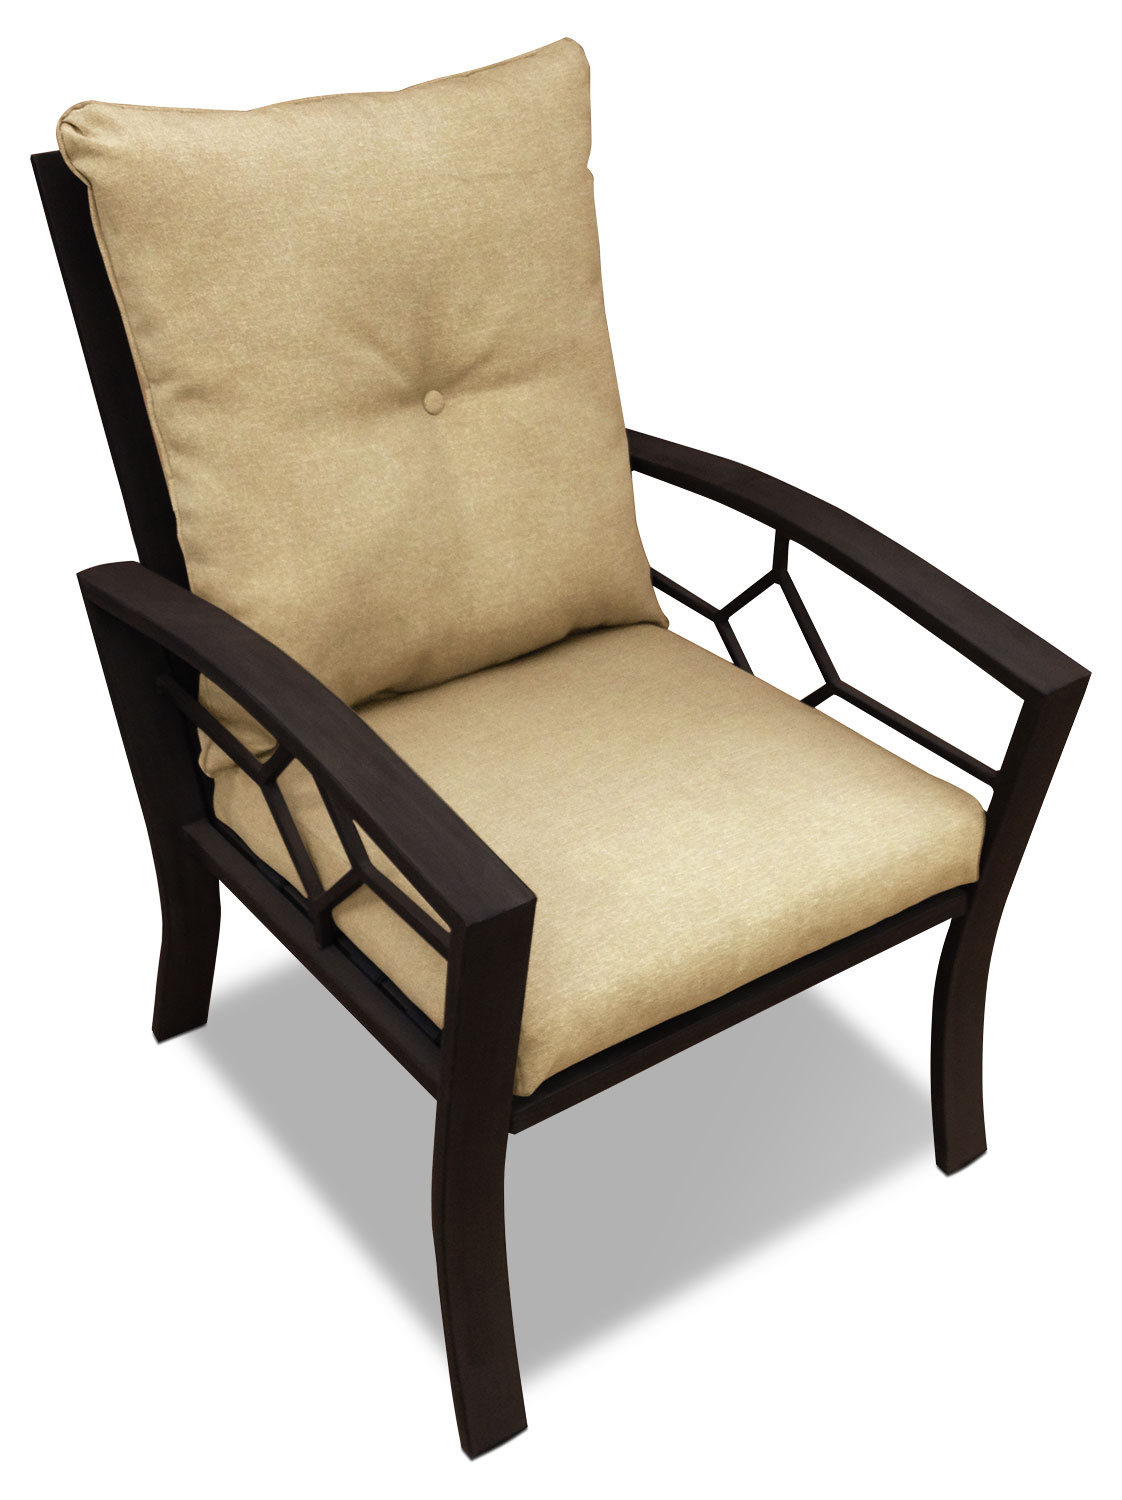 Outdoor Furniture - Kennedy Chat Chair